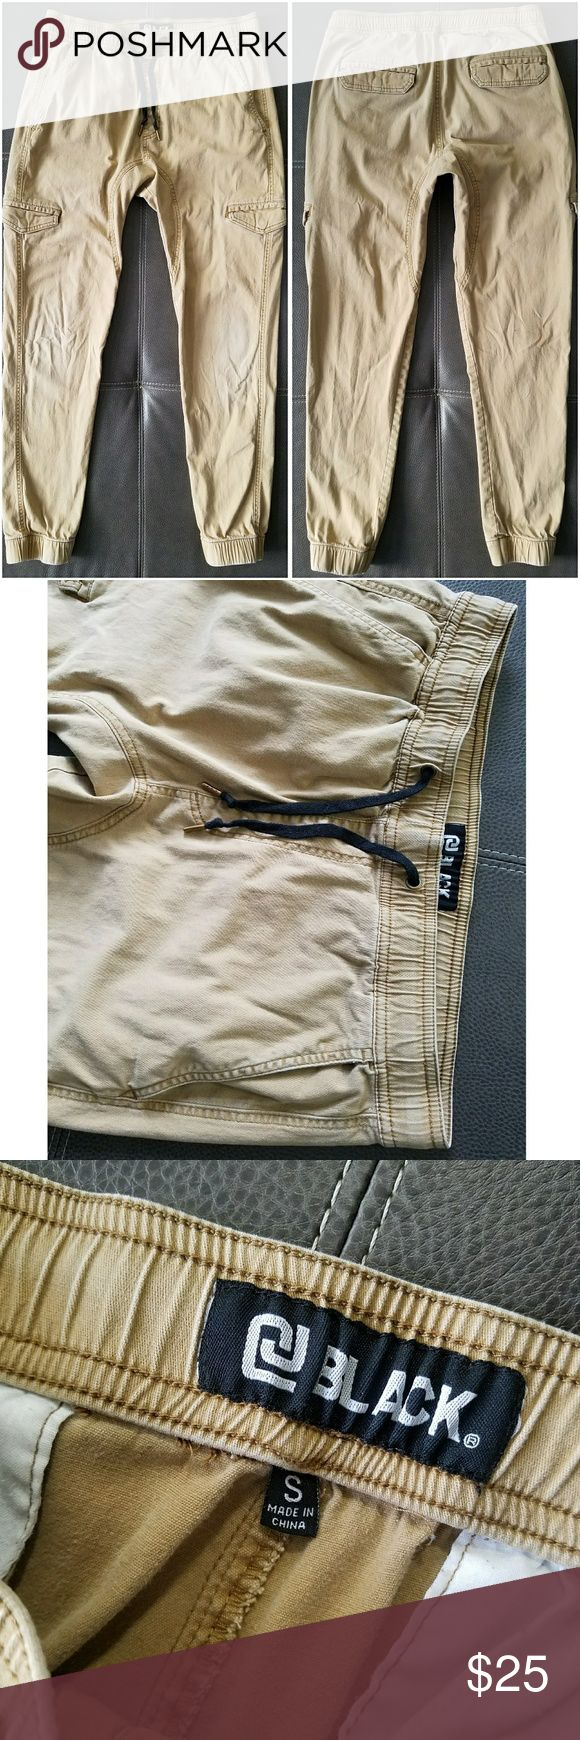 MEN'S KHAKI JOGGER PANTS BLACK BRAND MENS SIZE SMALL KHAKI JOGGER PANTS DRAWSTRING AROUND WAIST GUC •SLIGHTLY FADED AROUND KNEES black Pants Sweatpants & Joggers